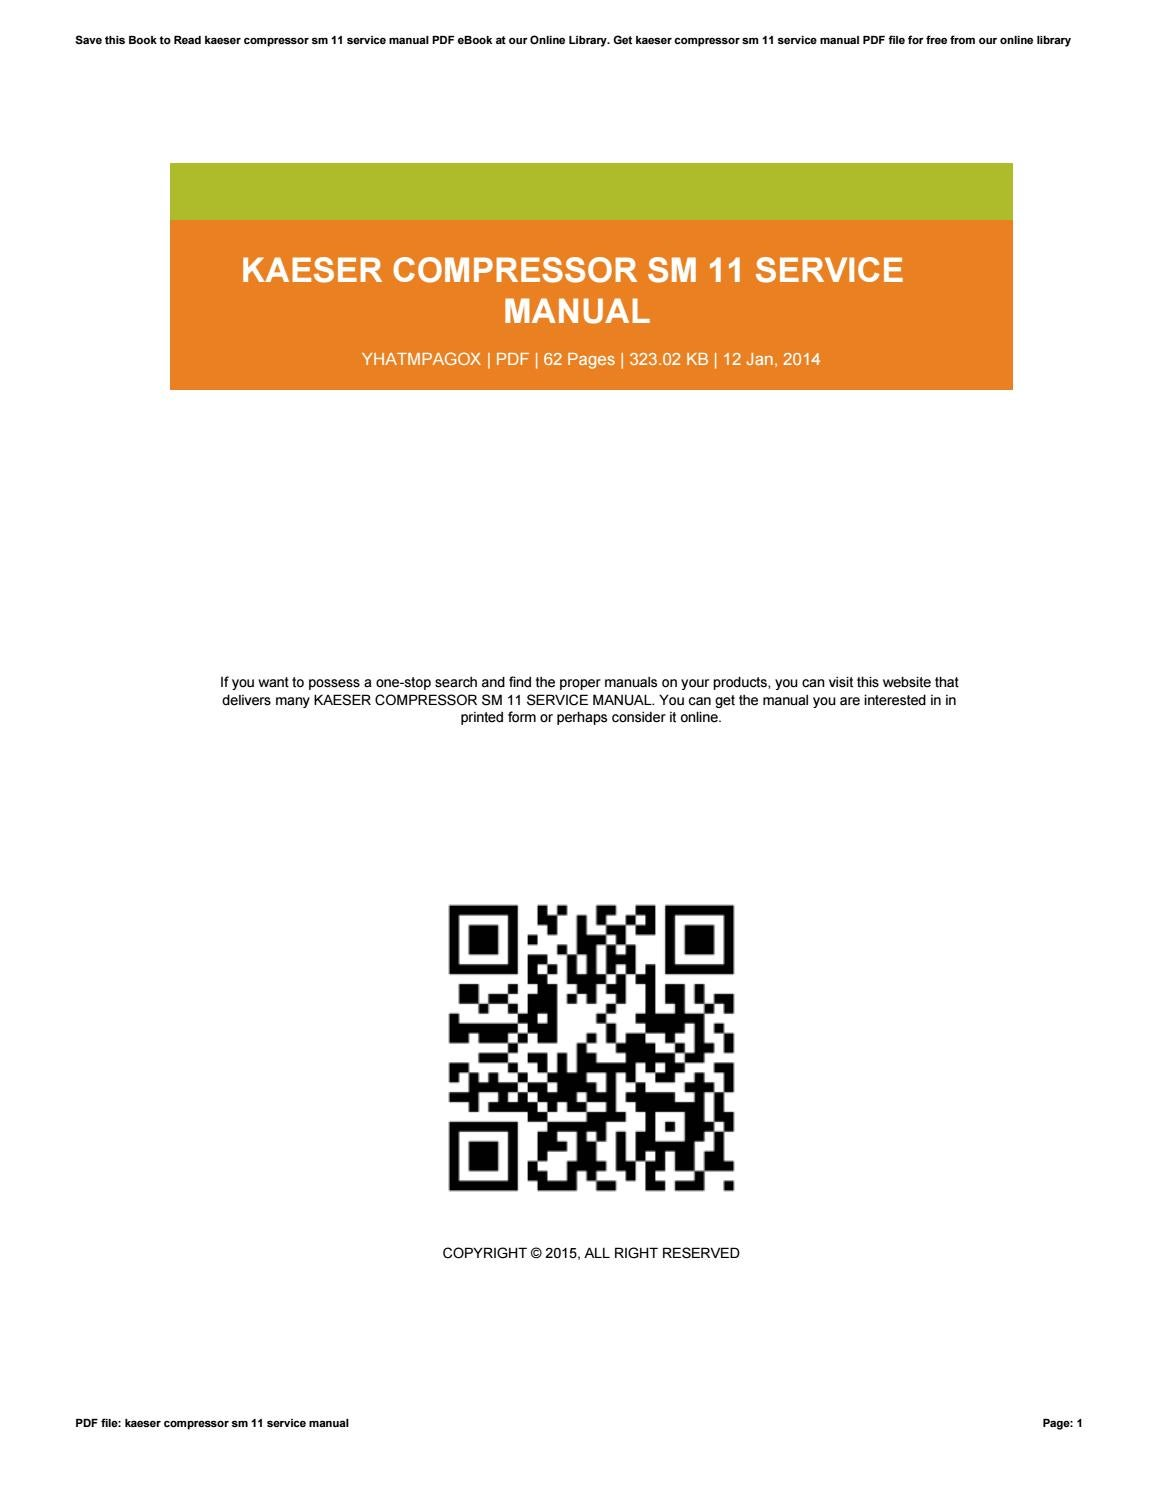 Kaeser sm 12 t service manual ebook sx rotary screw compressor array kaeser compressor sm 11 service manual by xing88652 issuu rh issuu fandeluxe Gallery